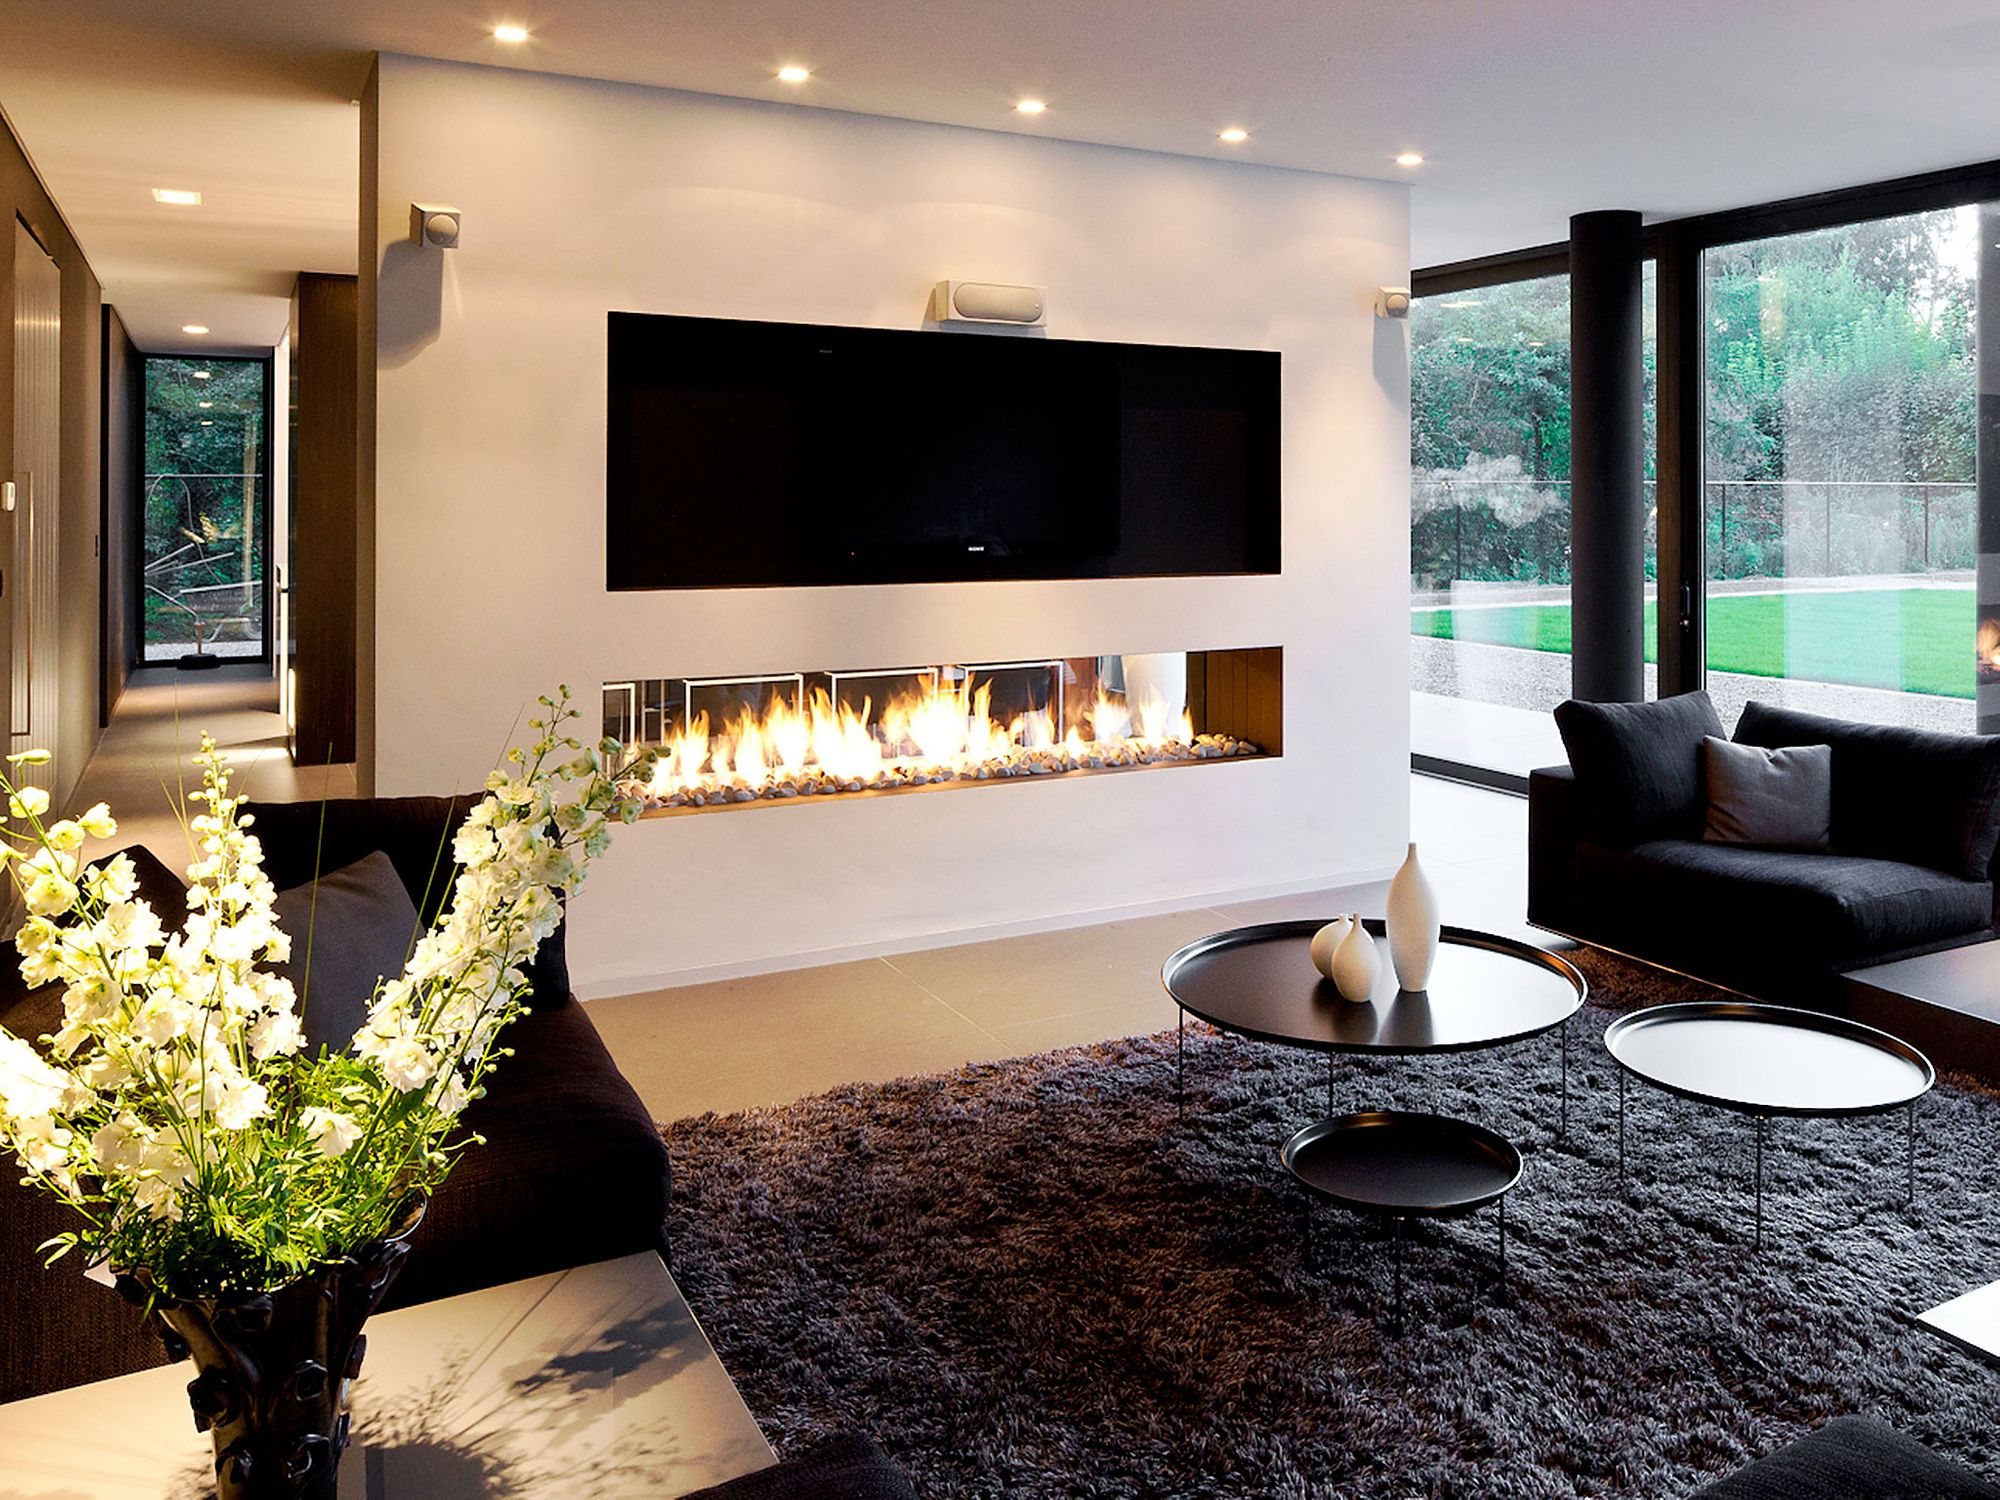 Pin By Bespoke Fireplace Designs On Erina In 2020 Living Room With Fireplace Fireplace Design Cozy Living Room Design